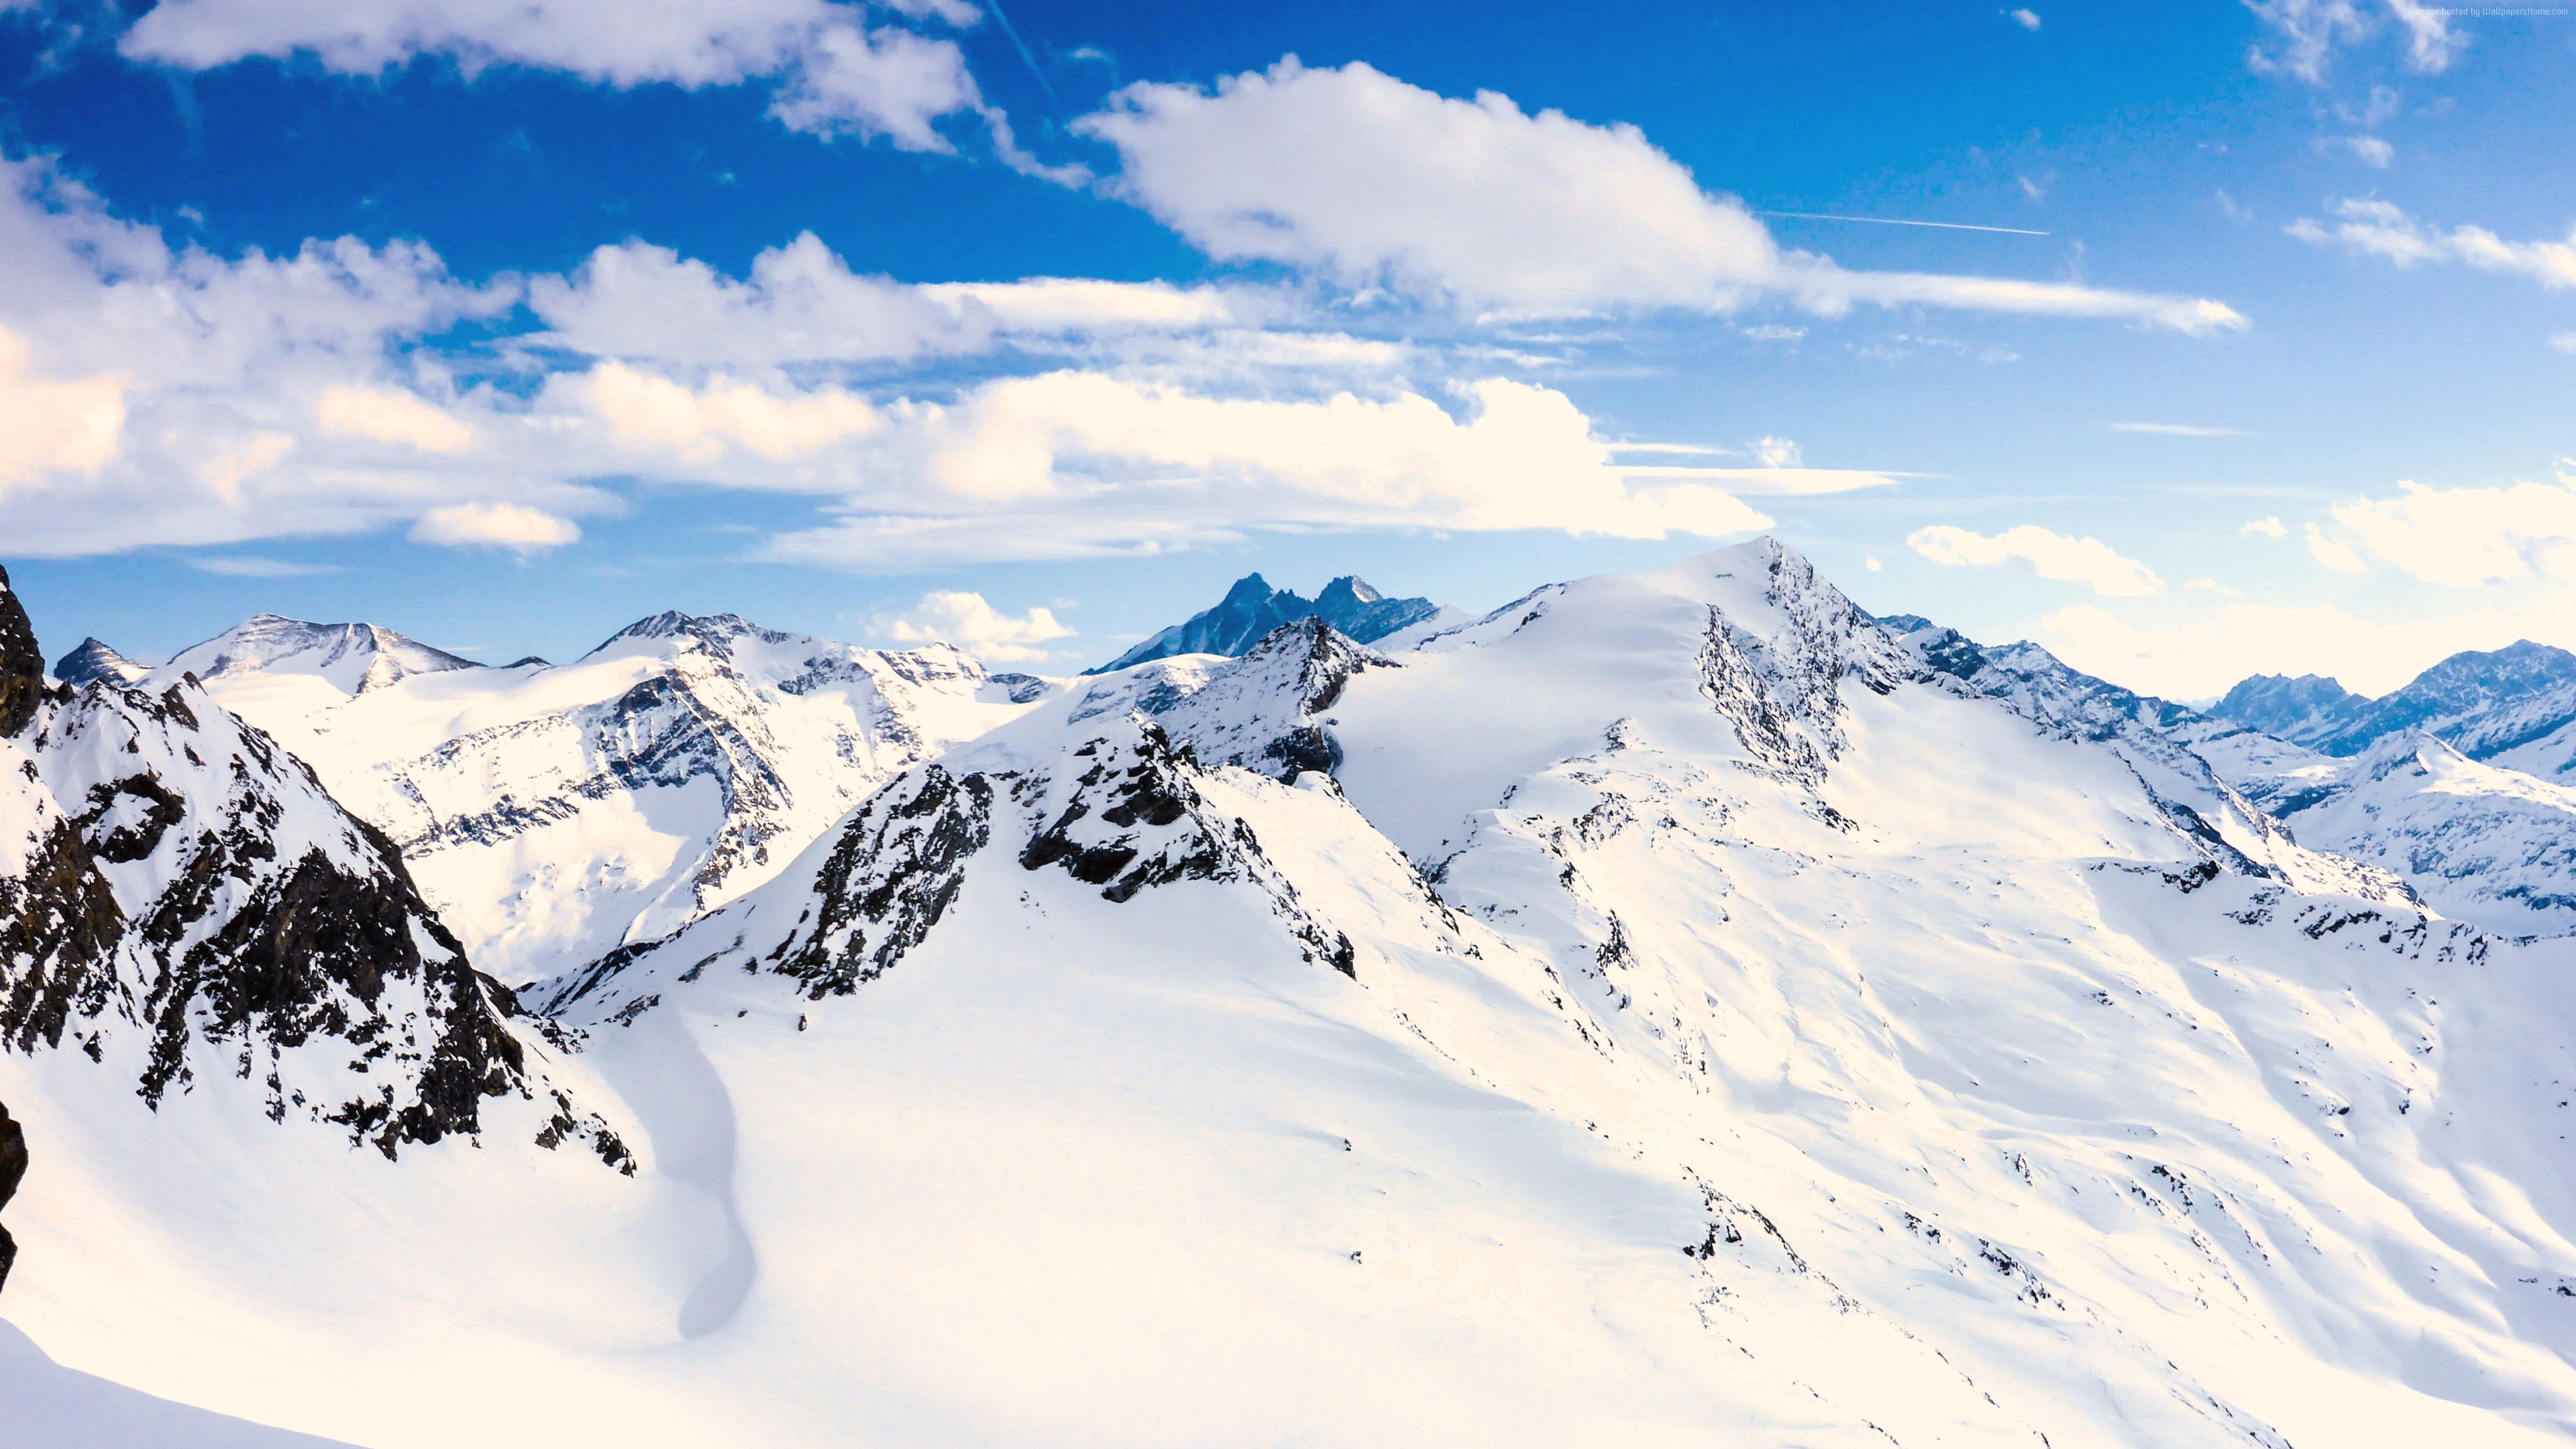 Wallpaper Grossglockner, mountains, Austria, snow, winter, sky, clouds, 5k, Nature